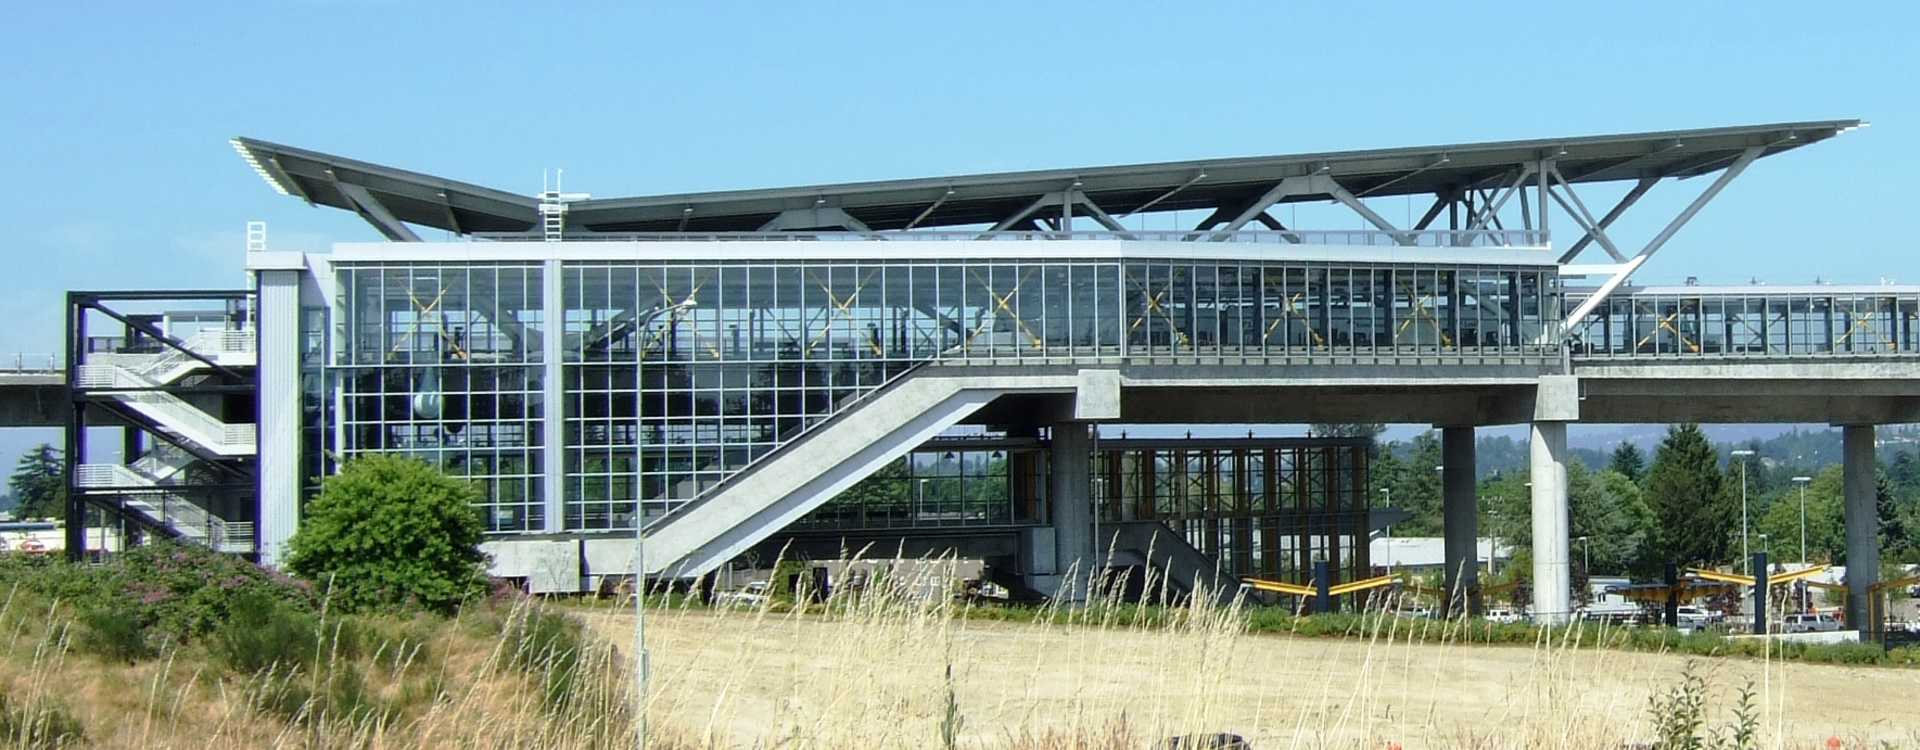 Tukwila Light Rail Station